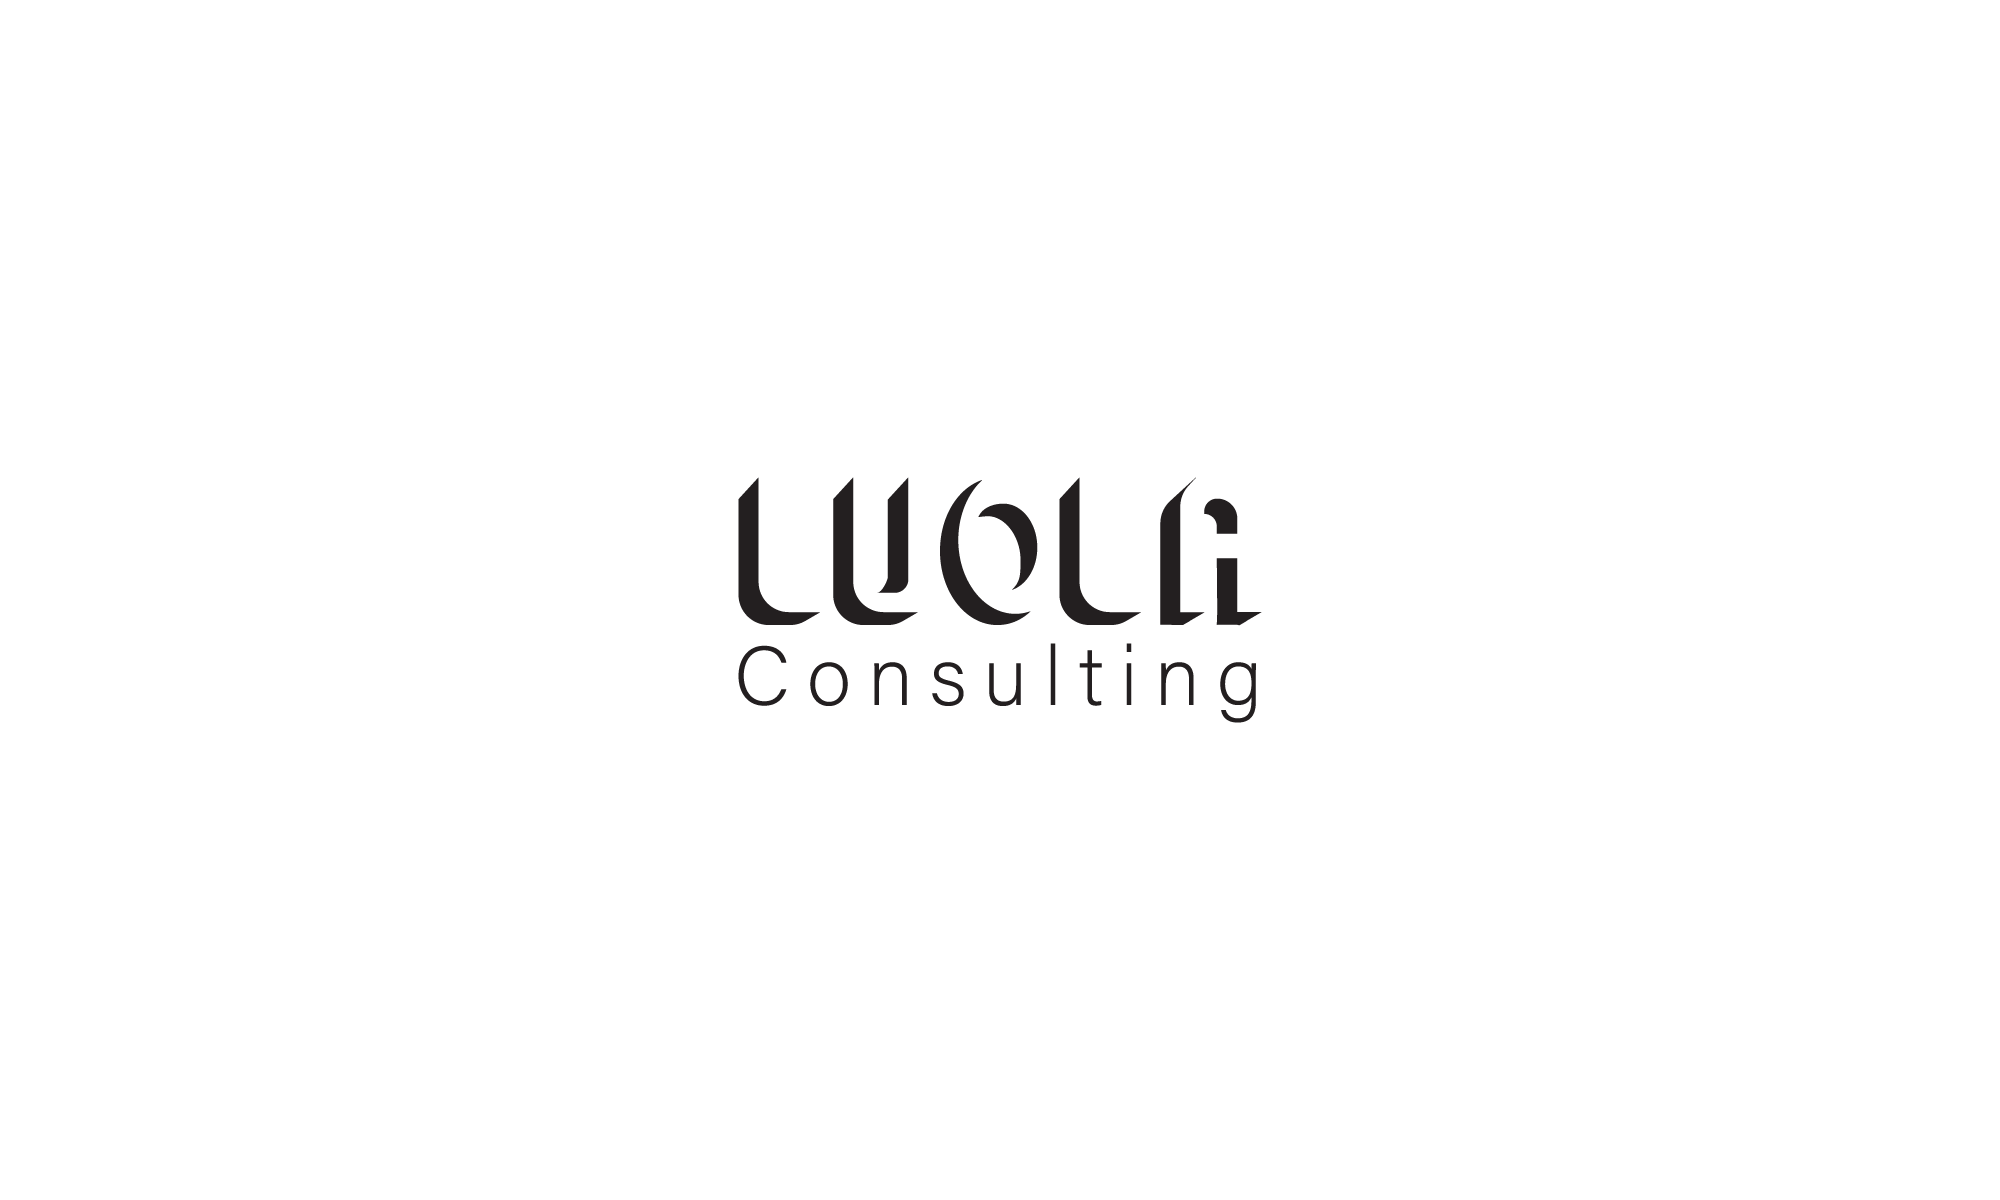 Luola Consulting Oy